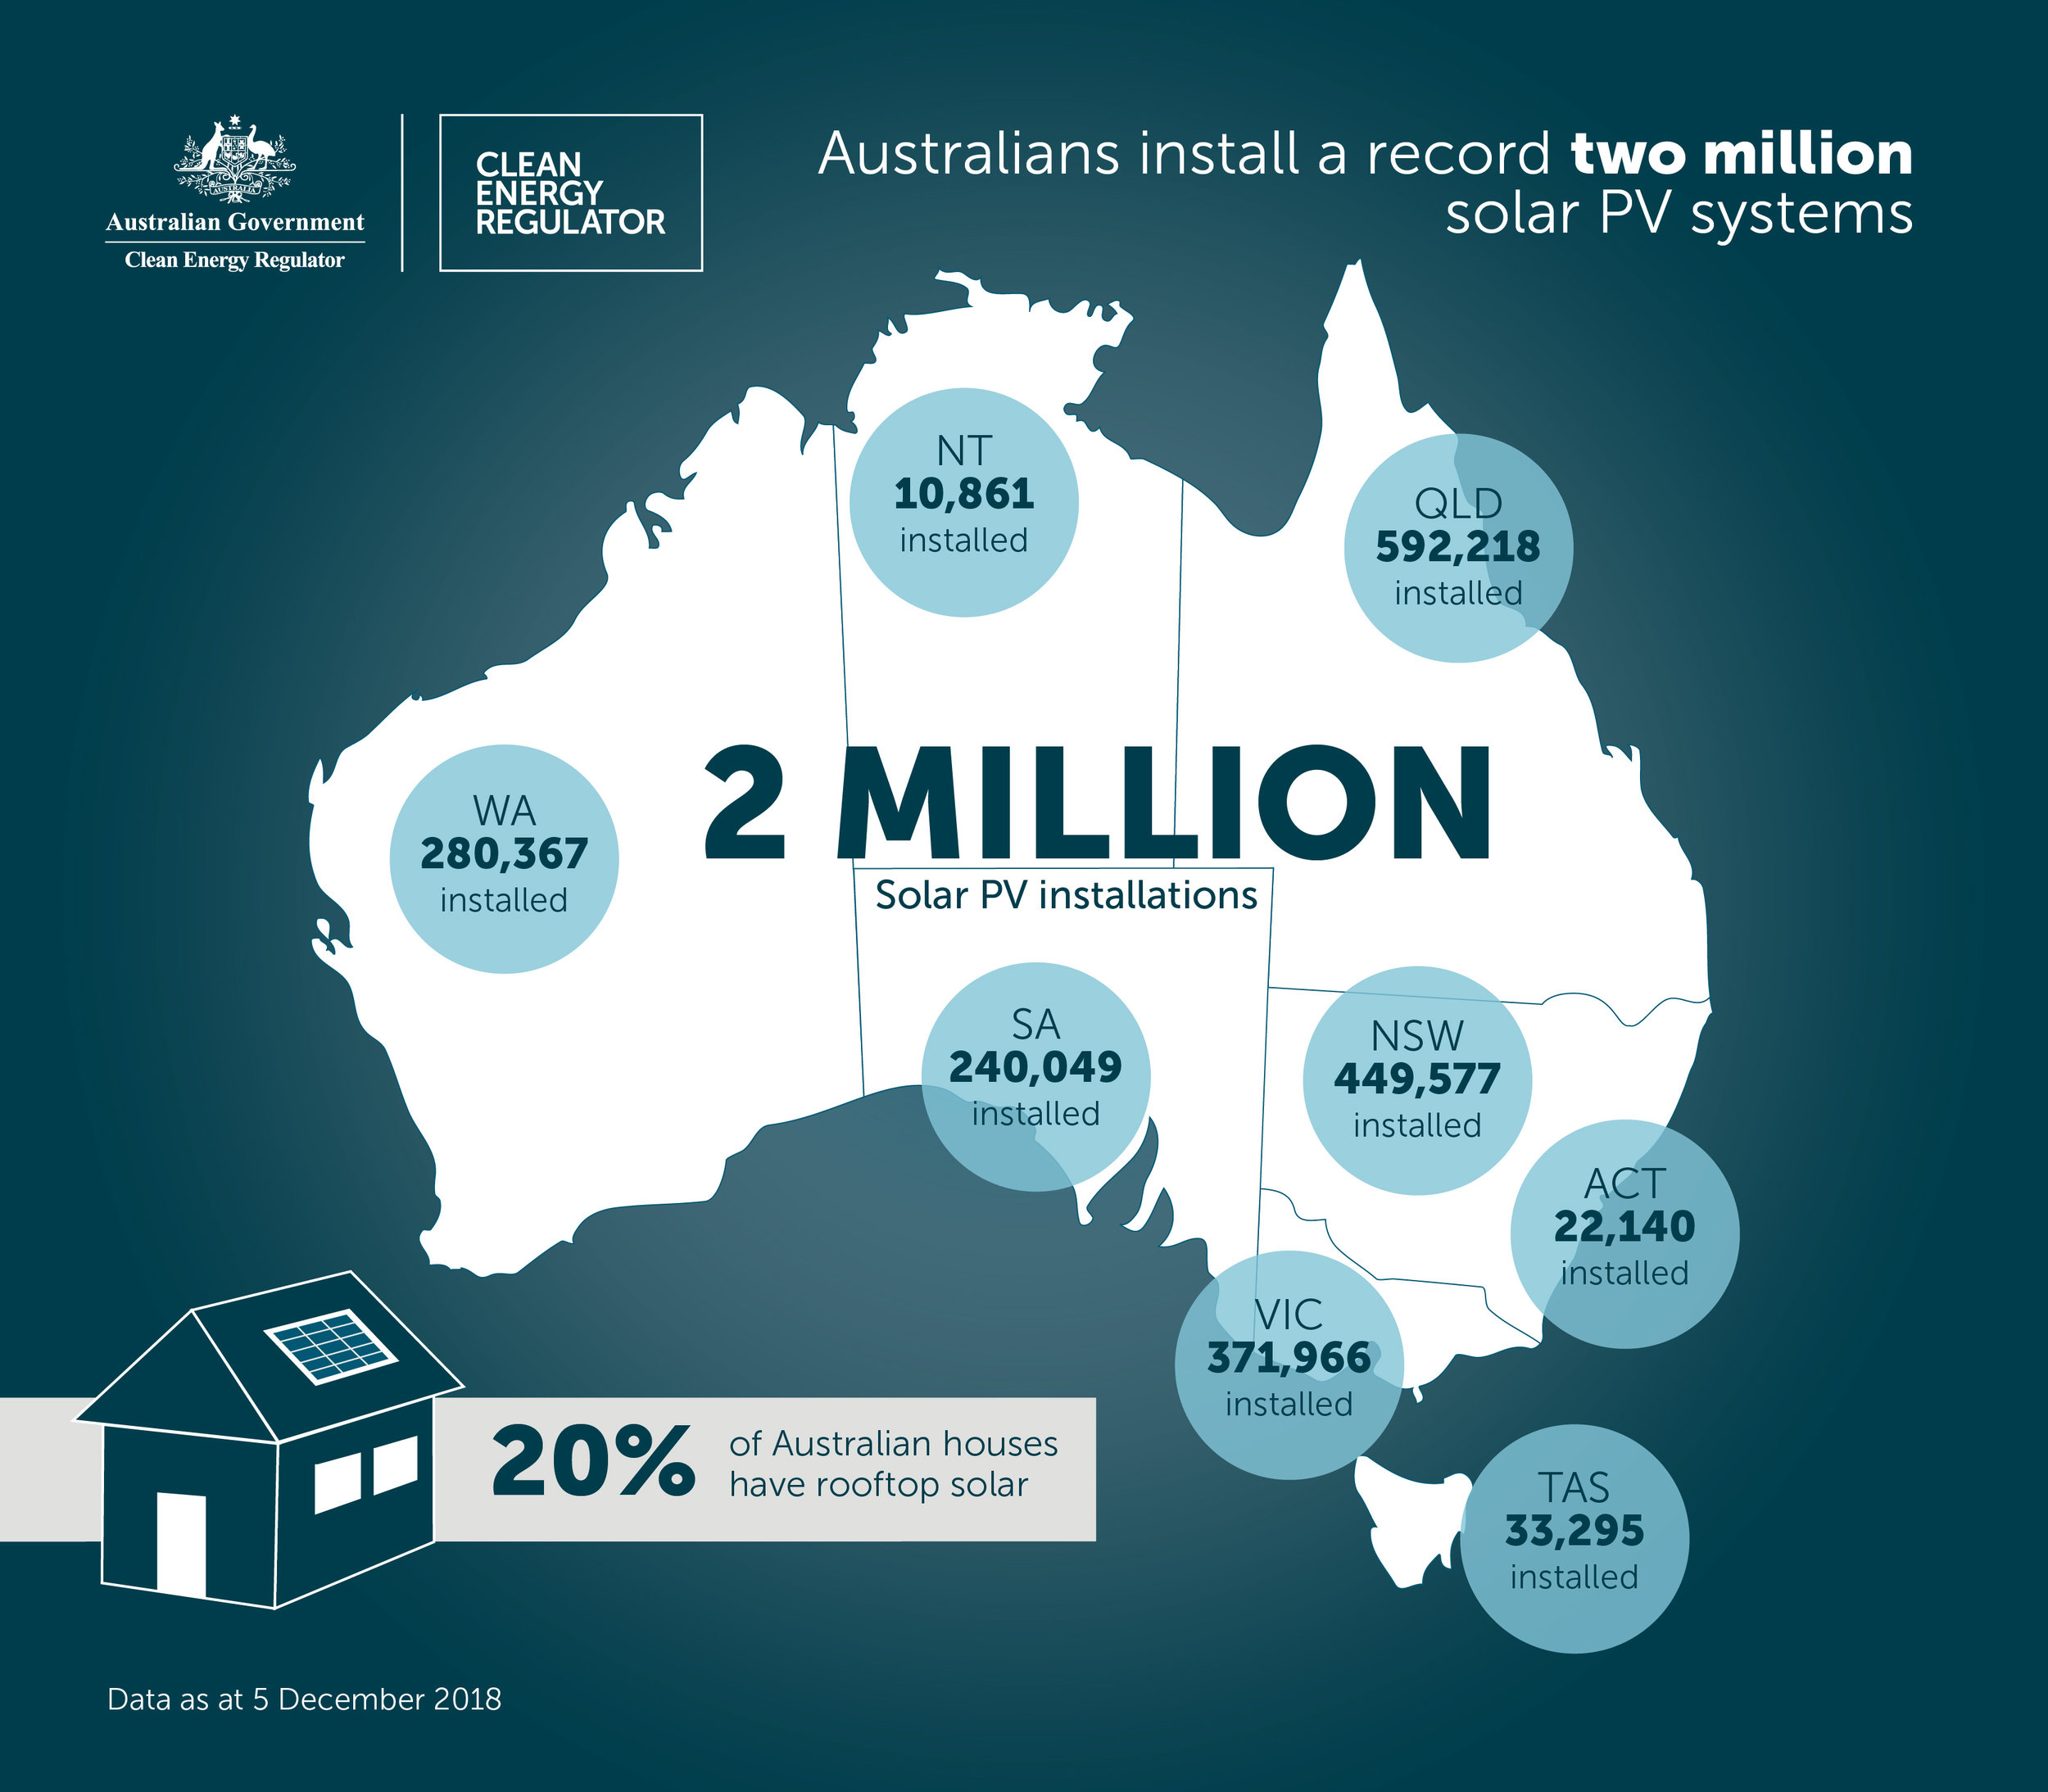 Australia now has over 2 million small-scale solar PV systems. (Image via the Clean Energy Regulator.)